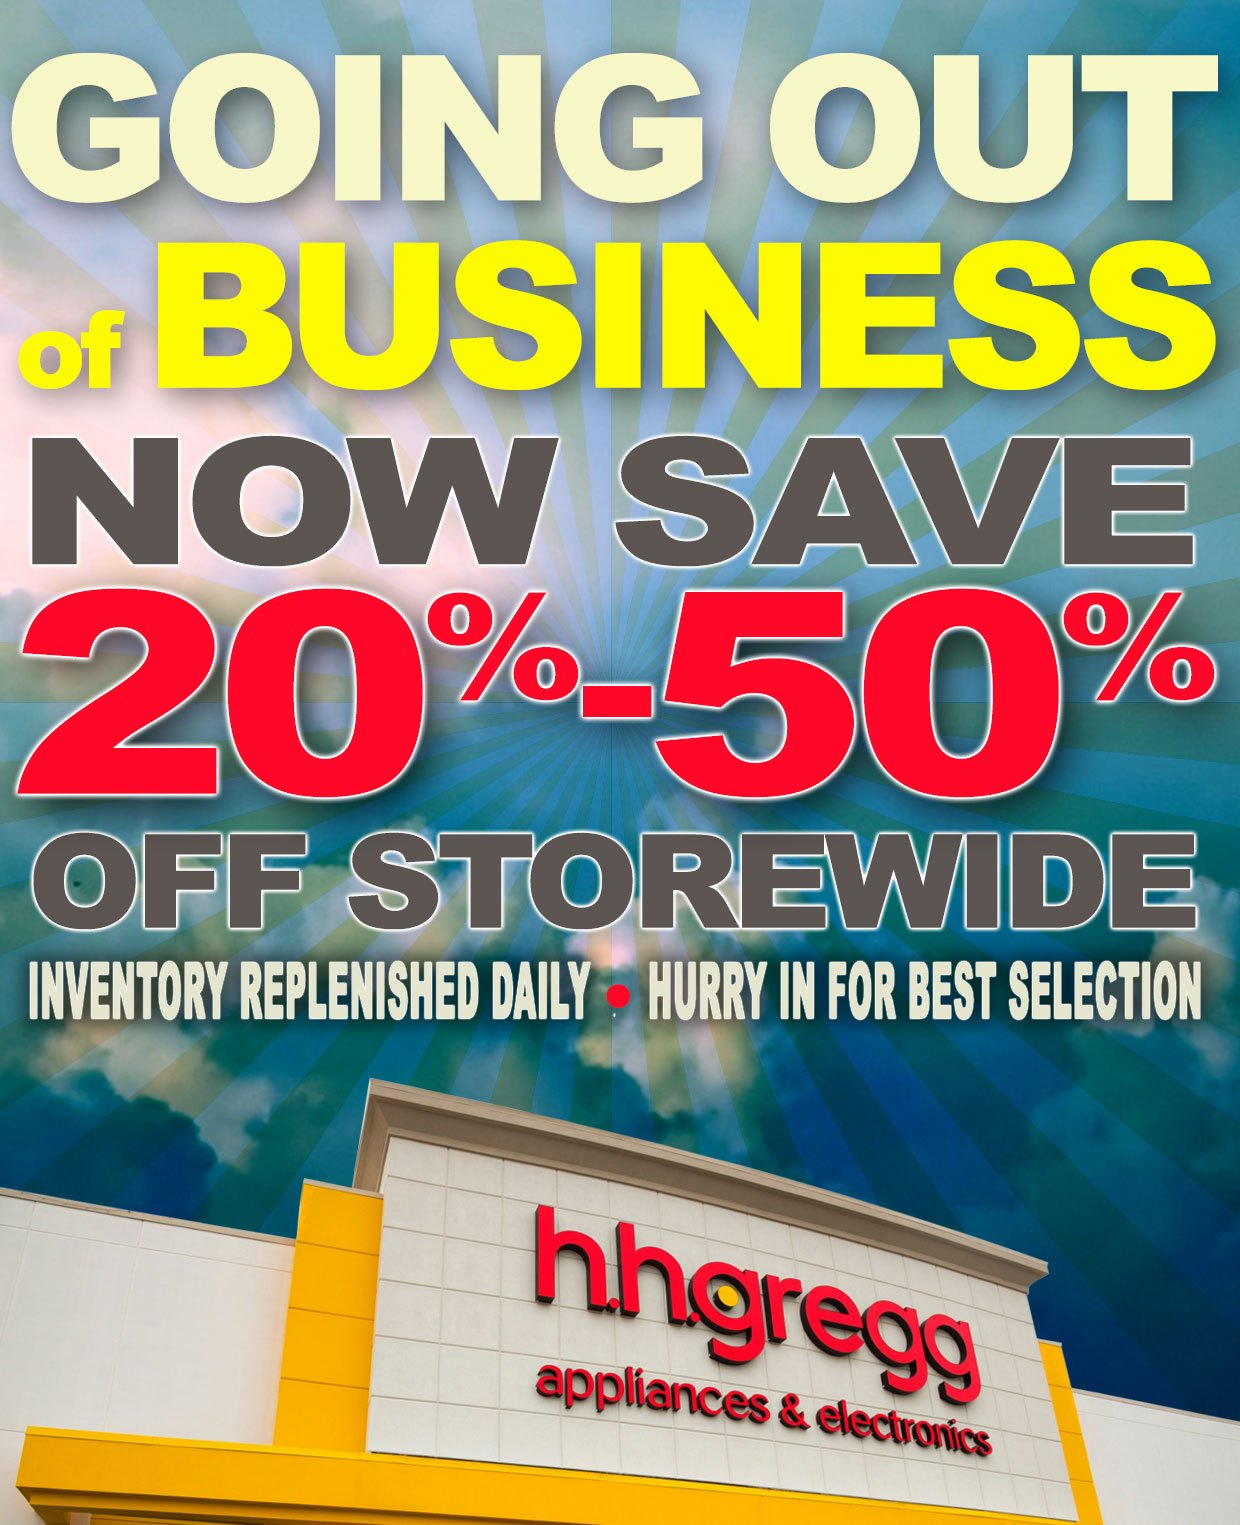 hhgregg Going Out of Business 30% off EVERYTHING!